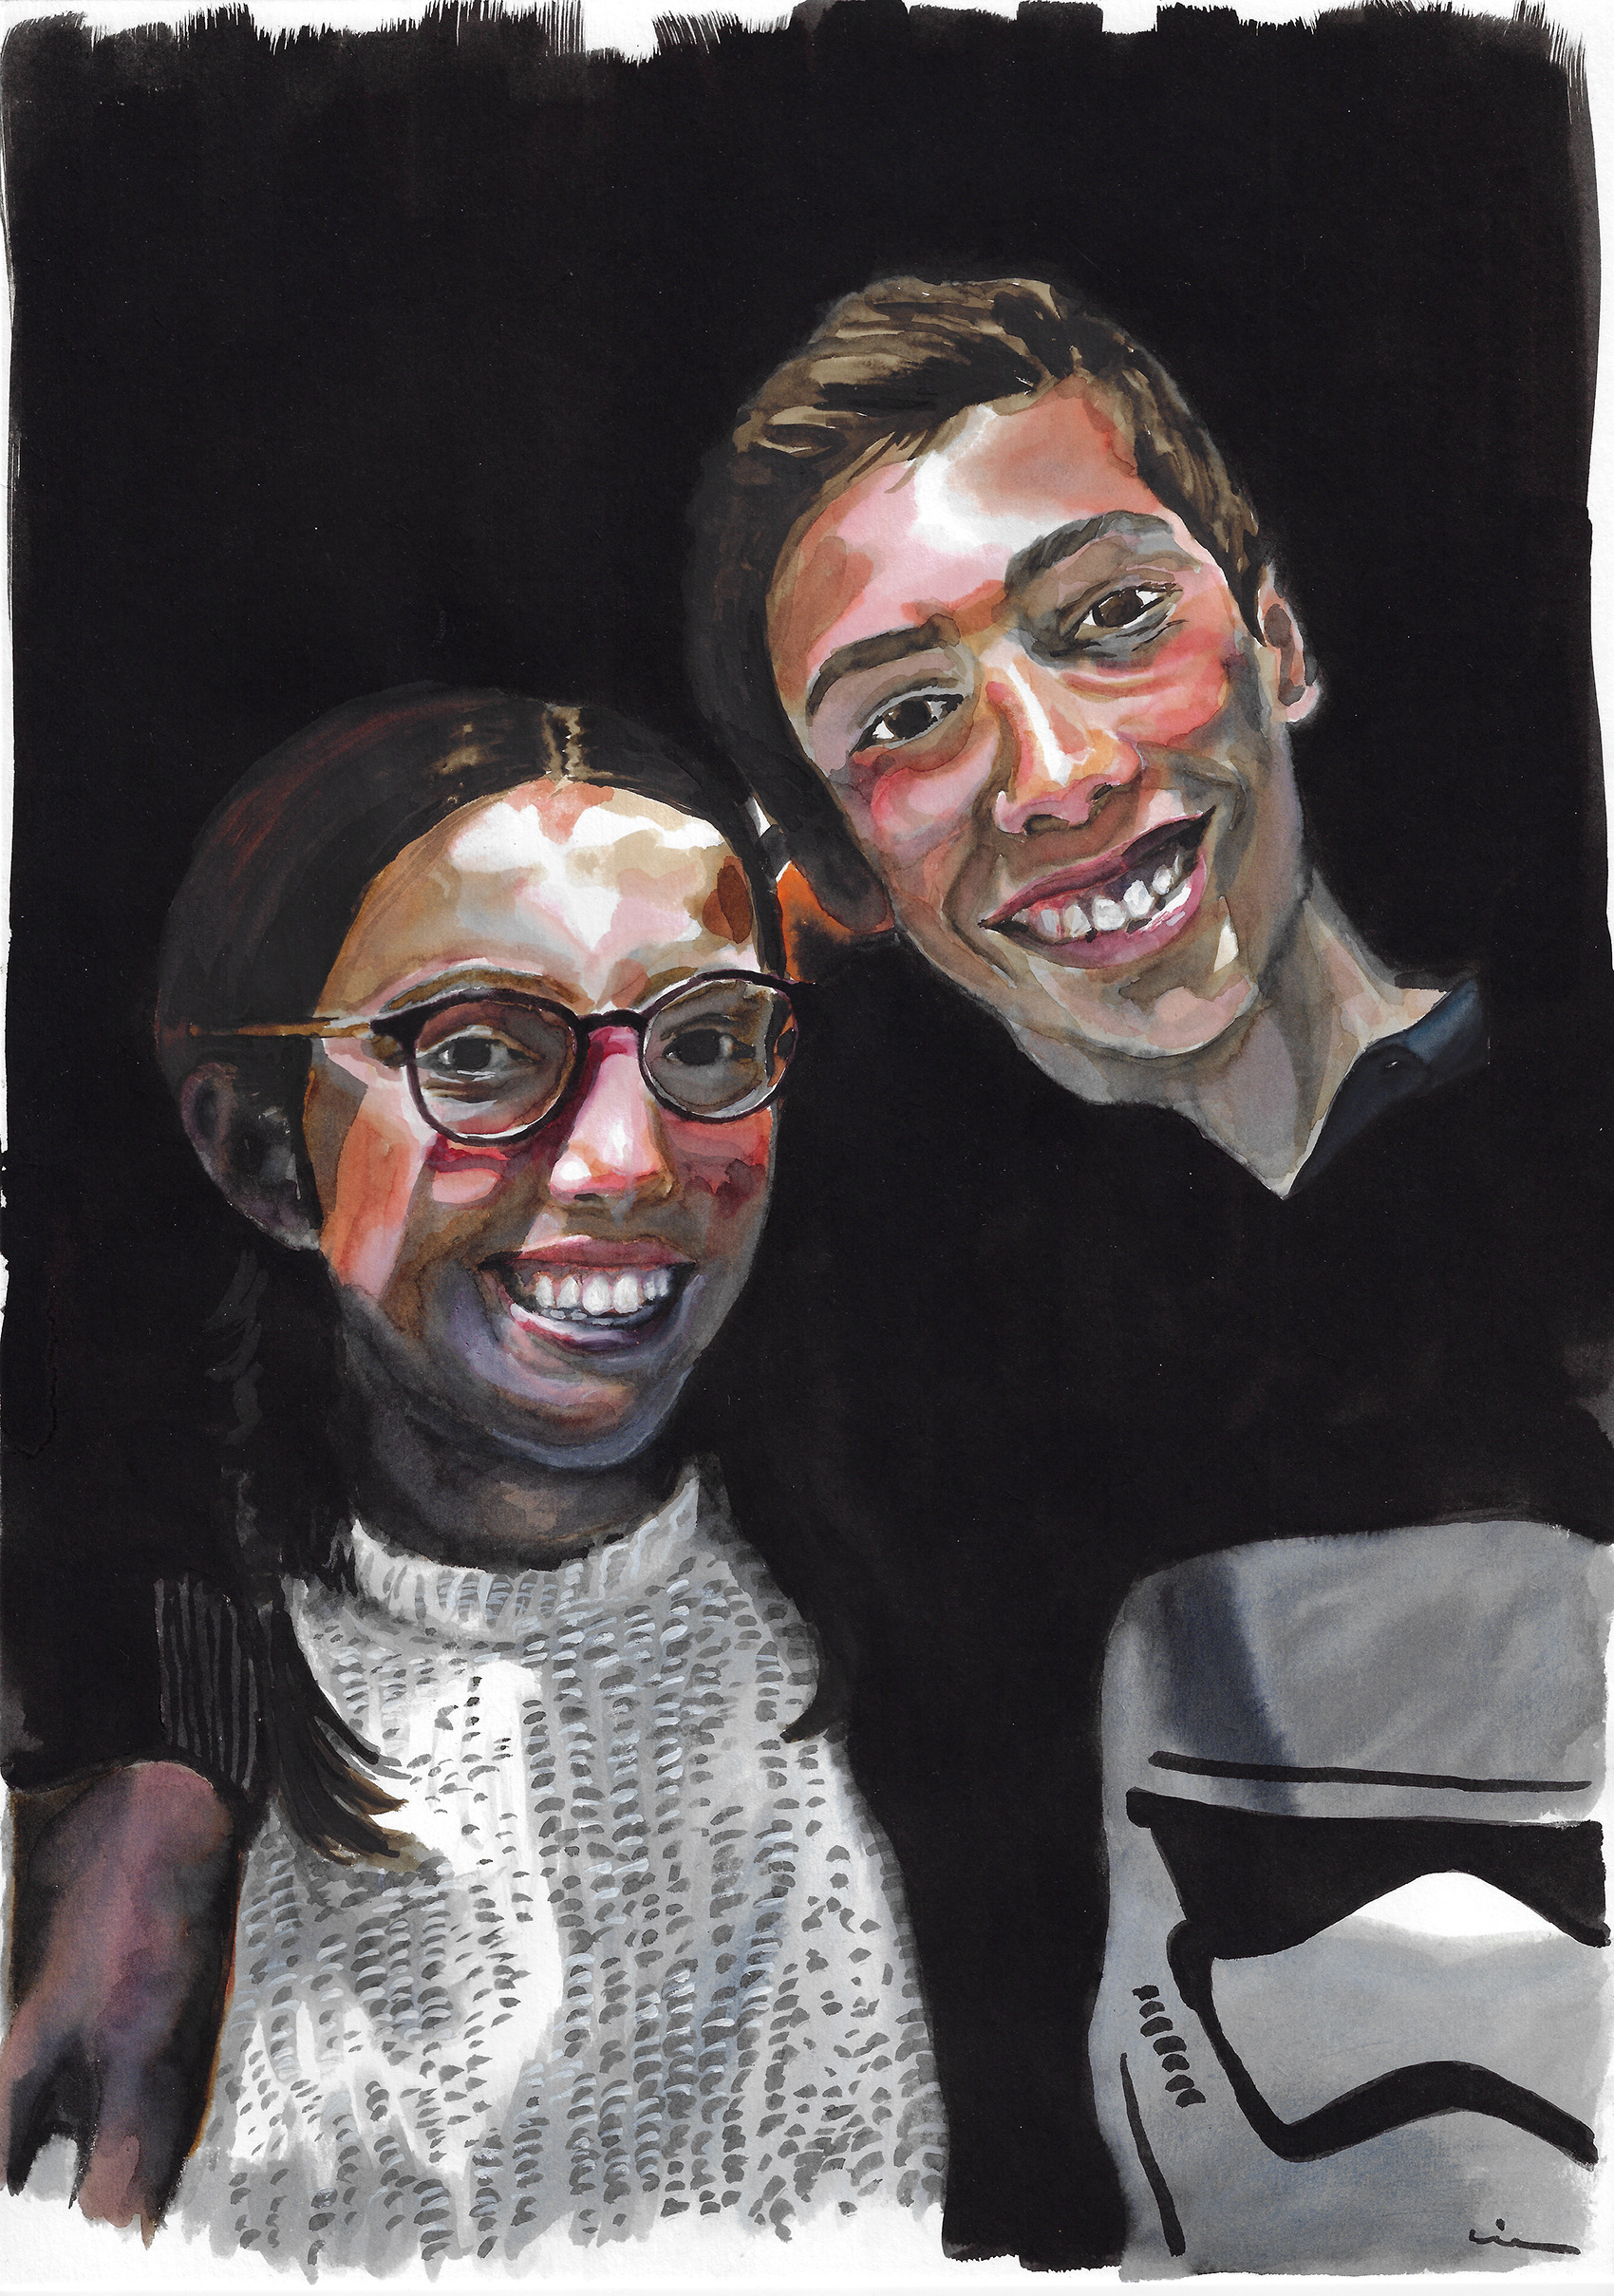 Sweet siblings. Watercolors on Canson Illustration Paper (250g/m2), A3 (42x29,7 cm). Sold. Commissioned work.  (Unavailable.)